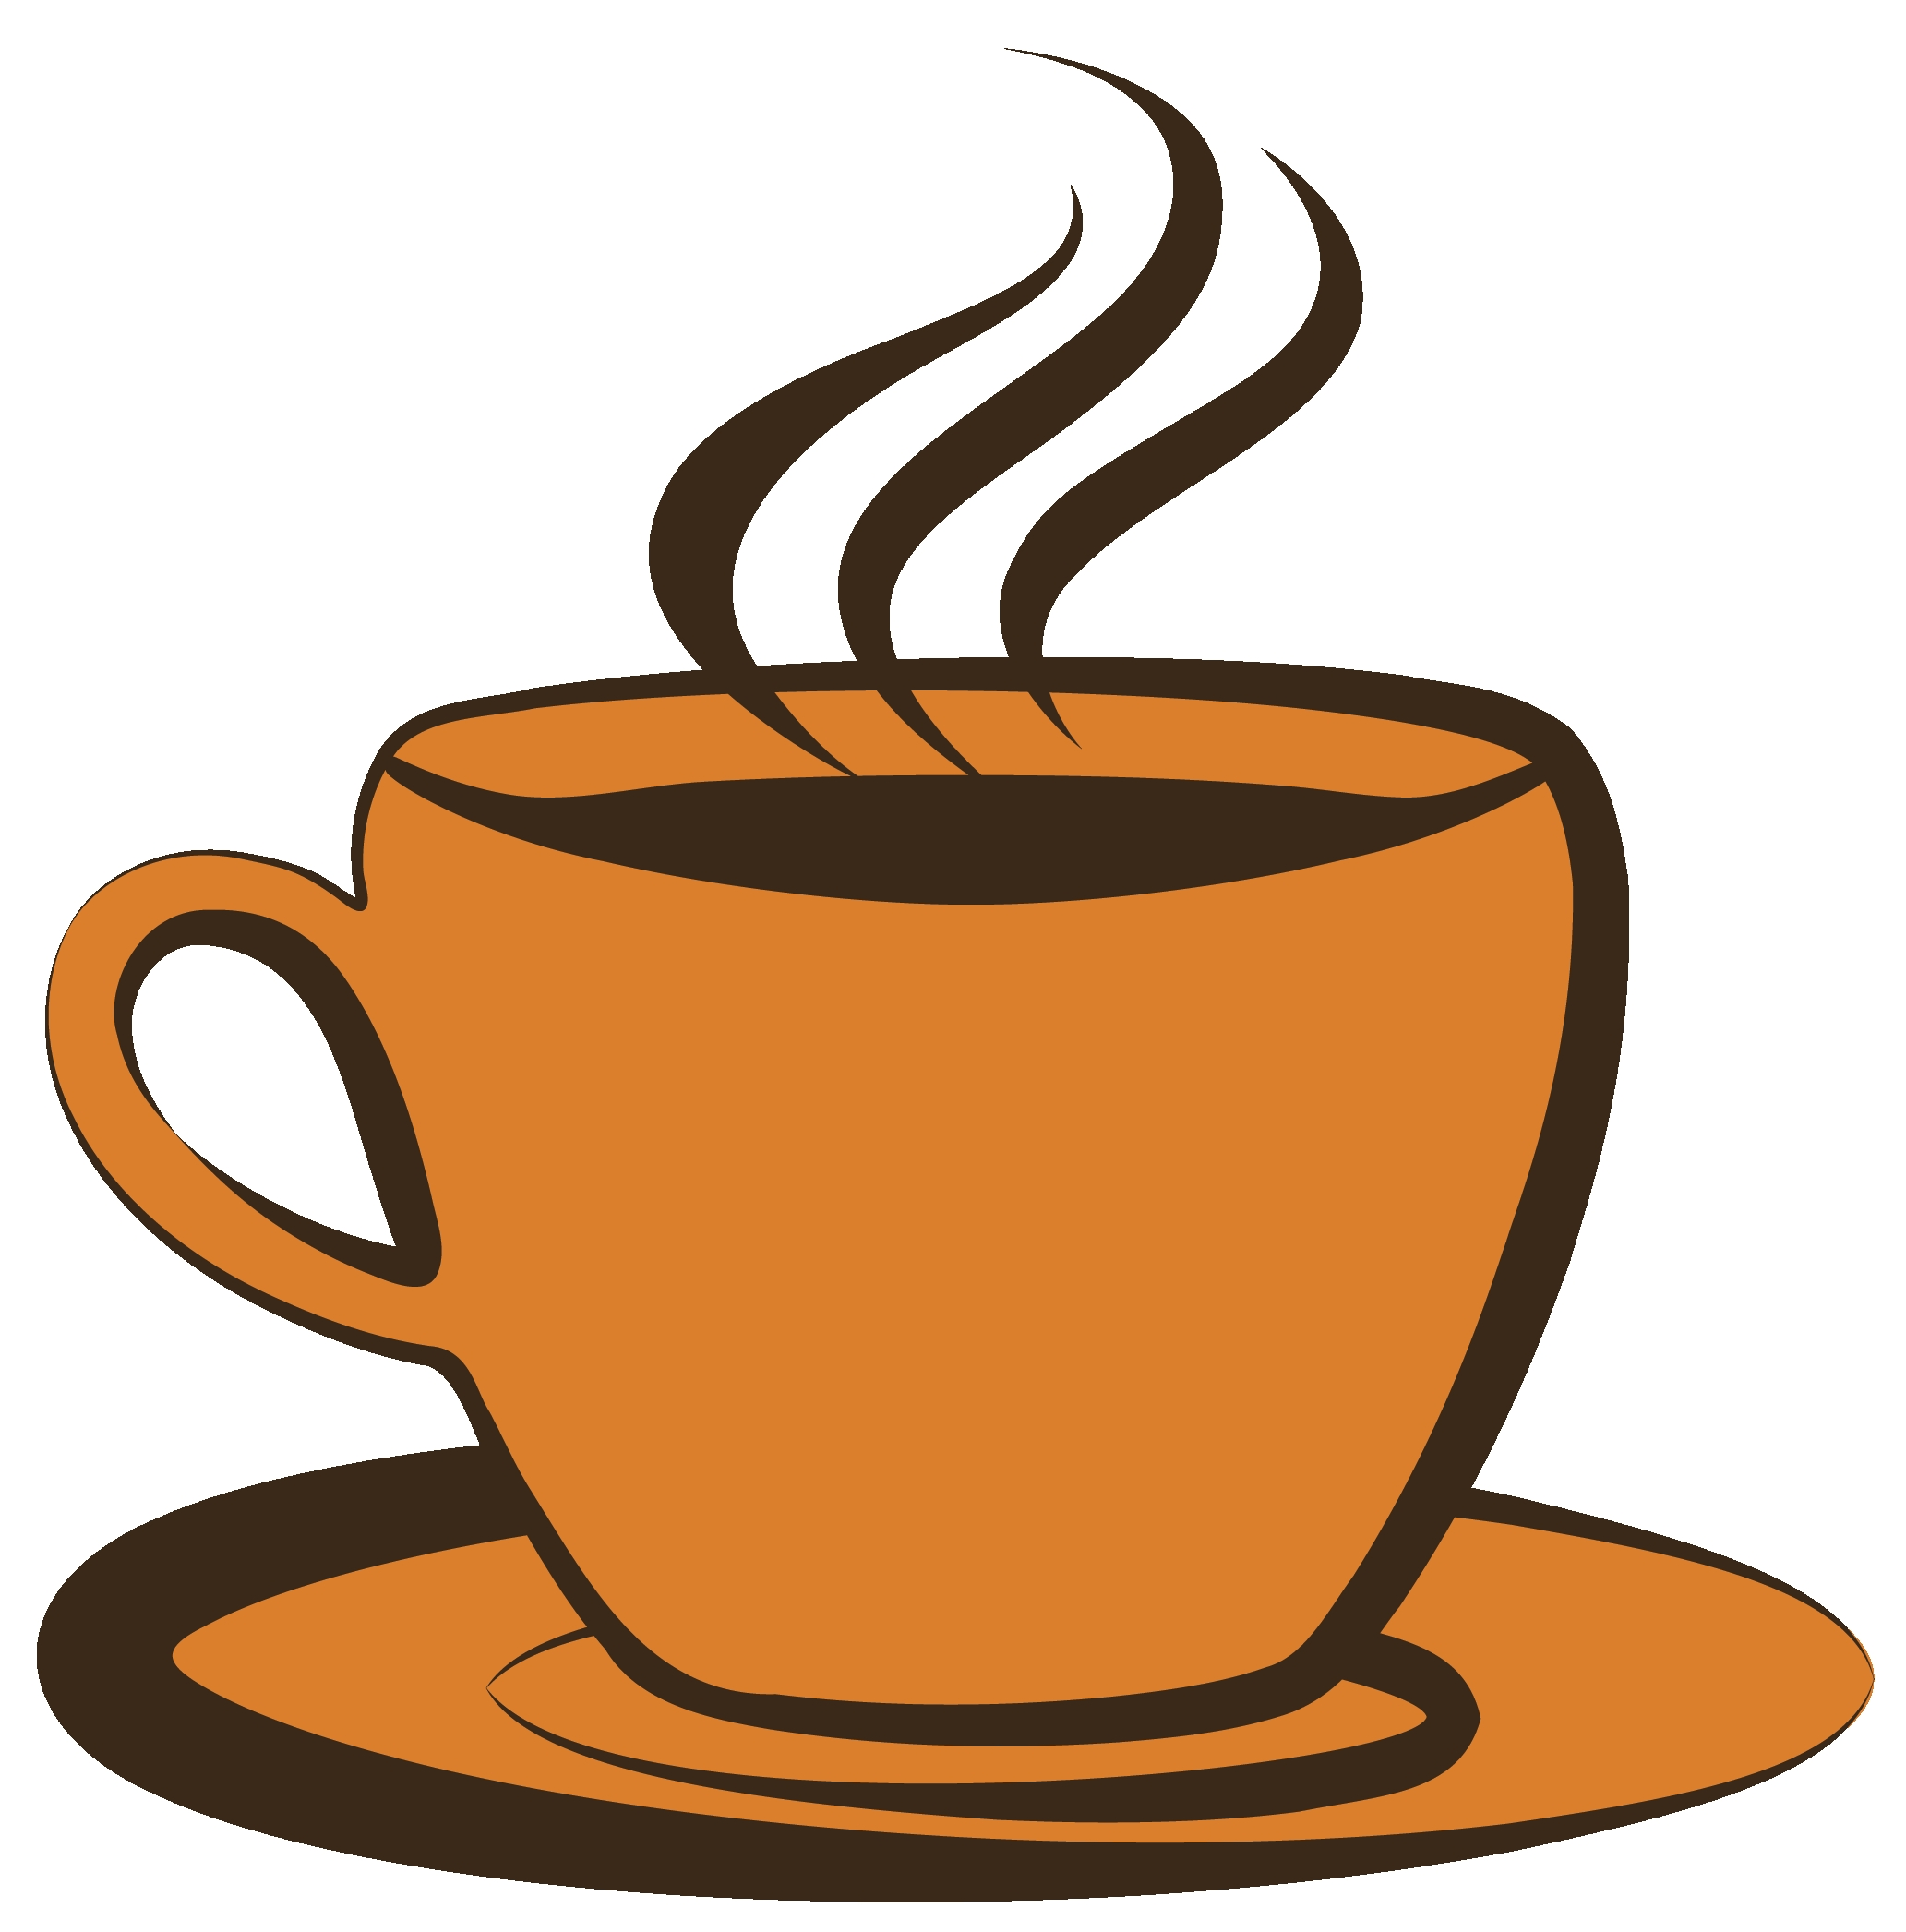 Clipart of coffee mugs cliparts galleries.